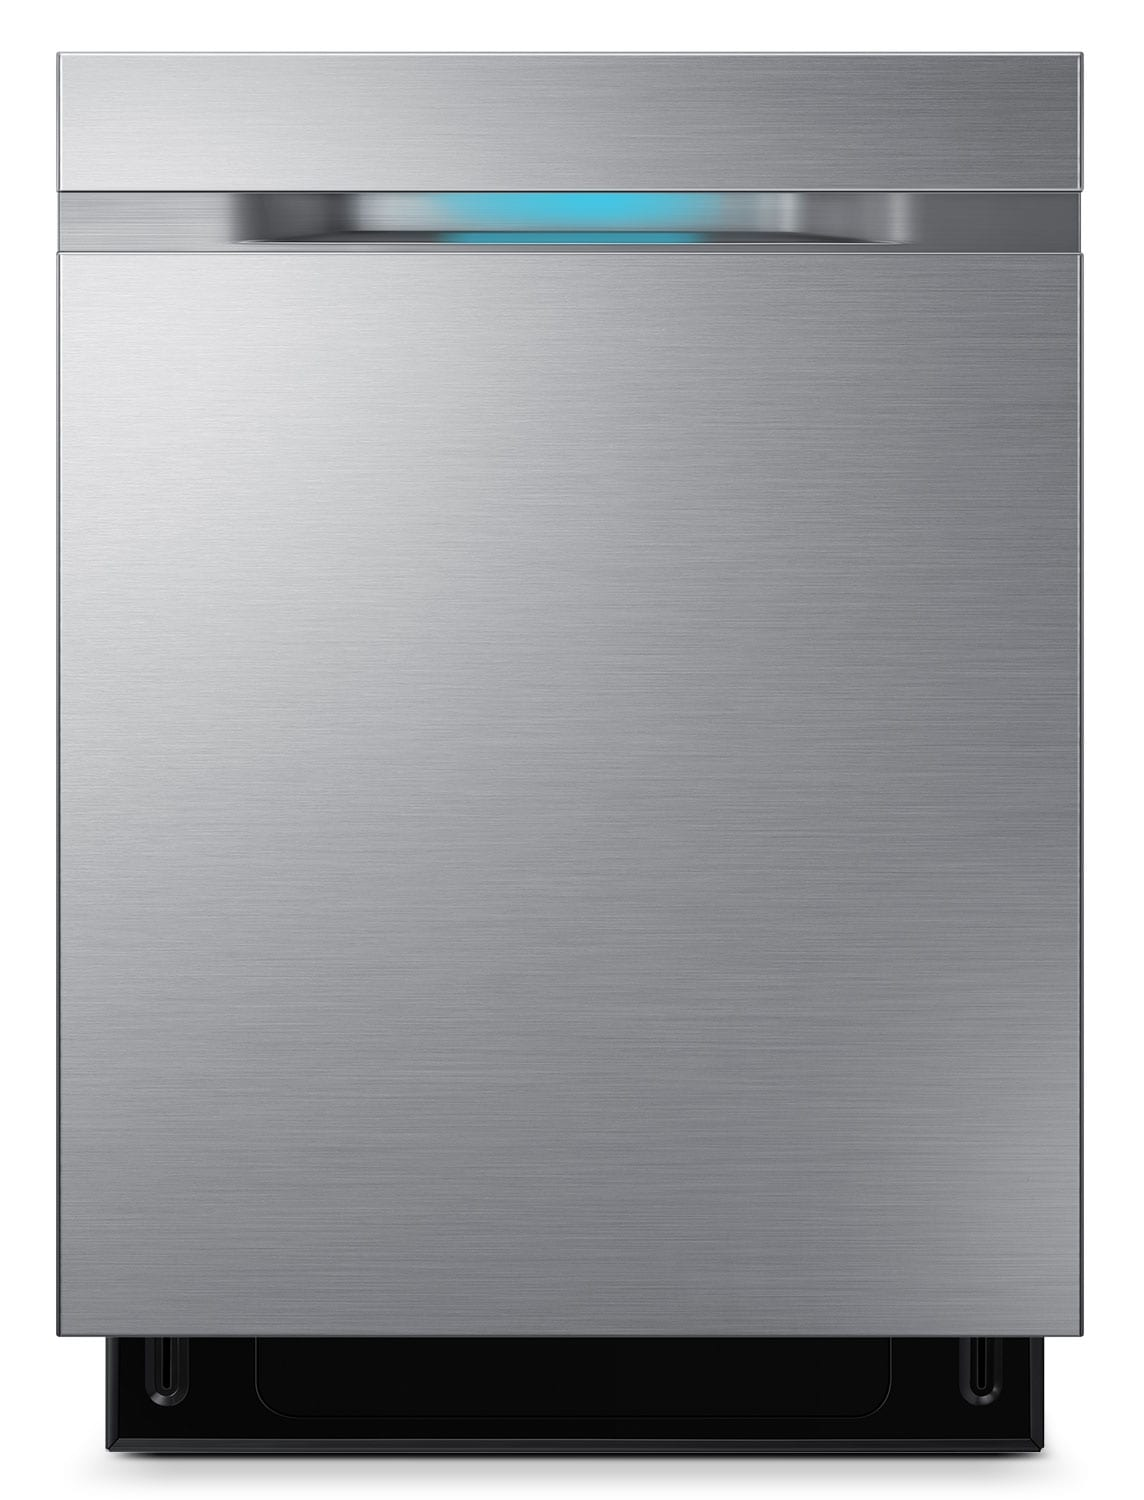 Clean-Up - Samsung Stainless Steel Dishwasher - DW80J7550US/AC